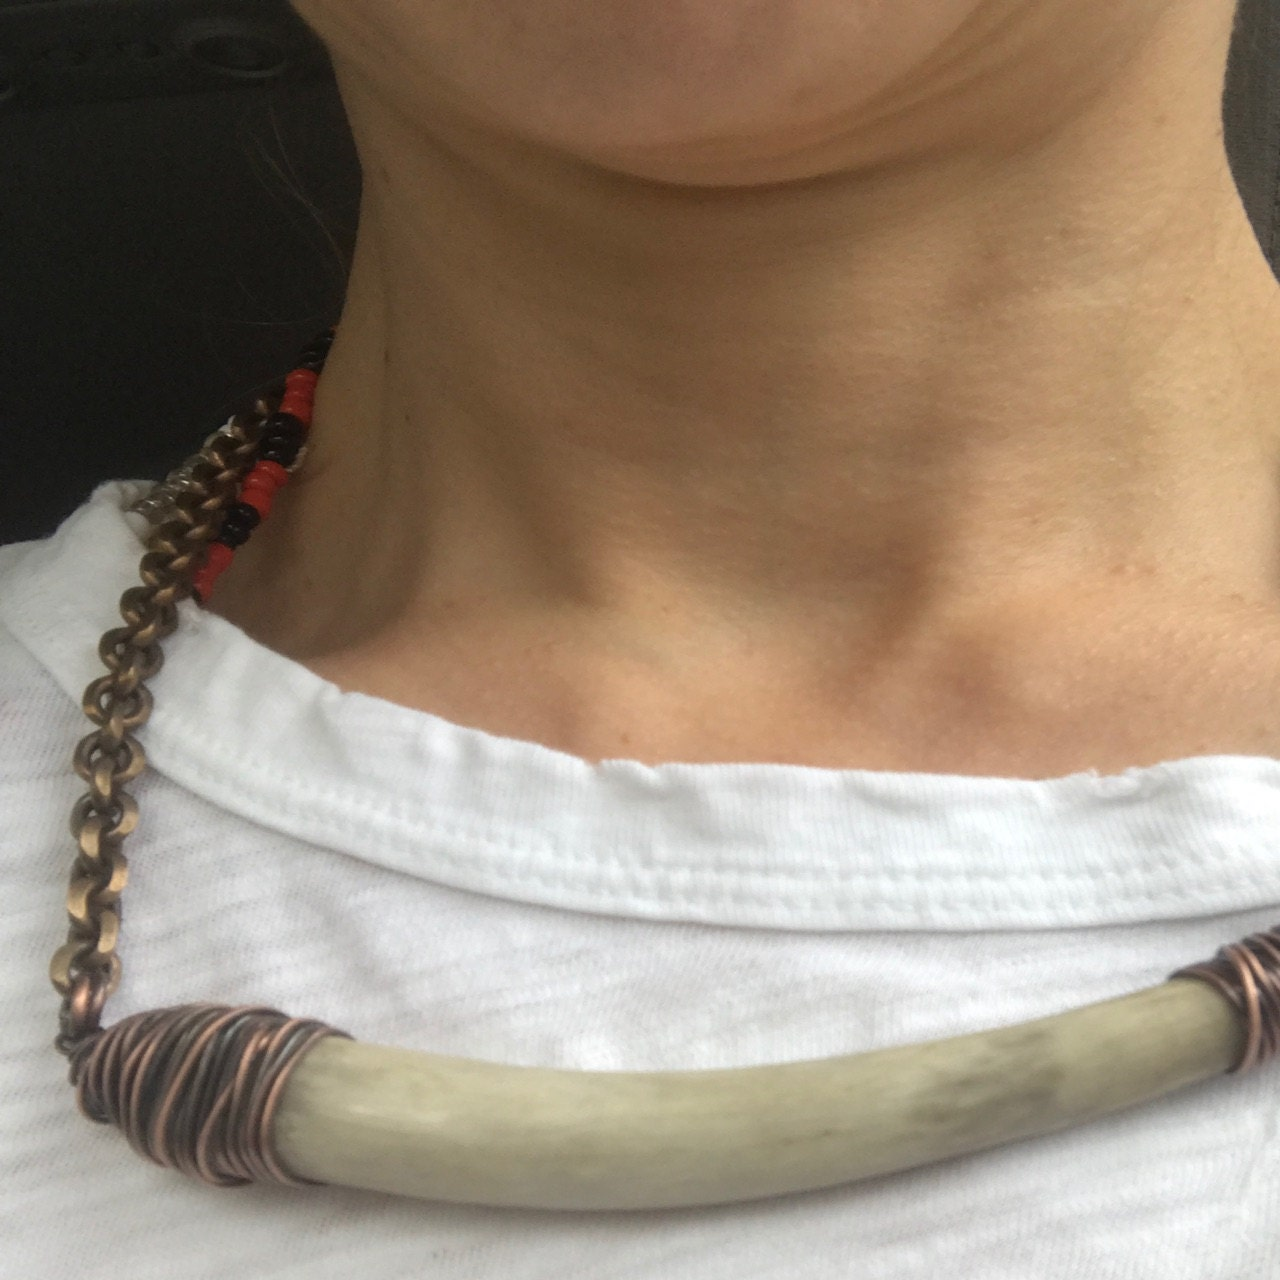 rominacervantes added a photo of their purchase